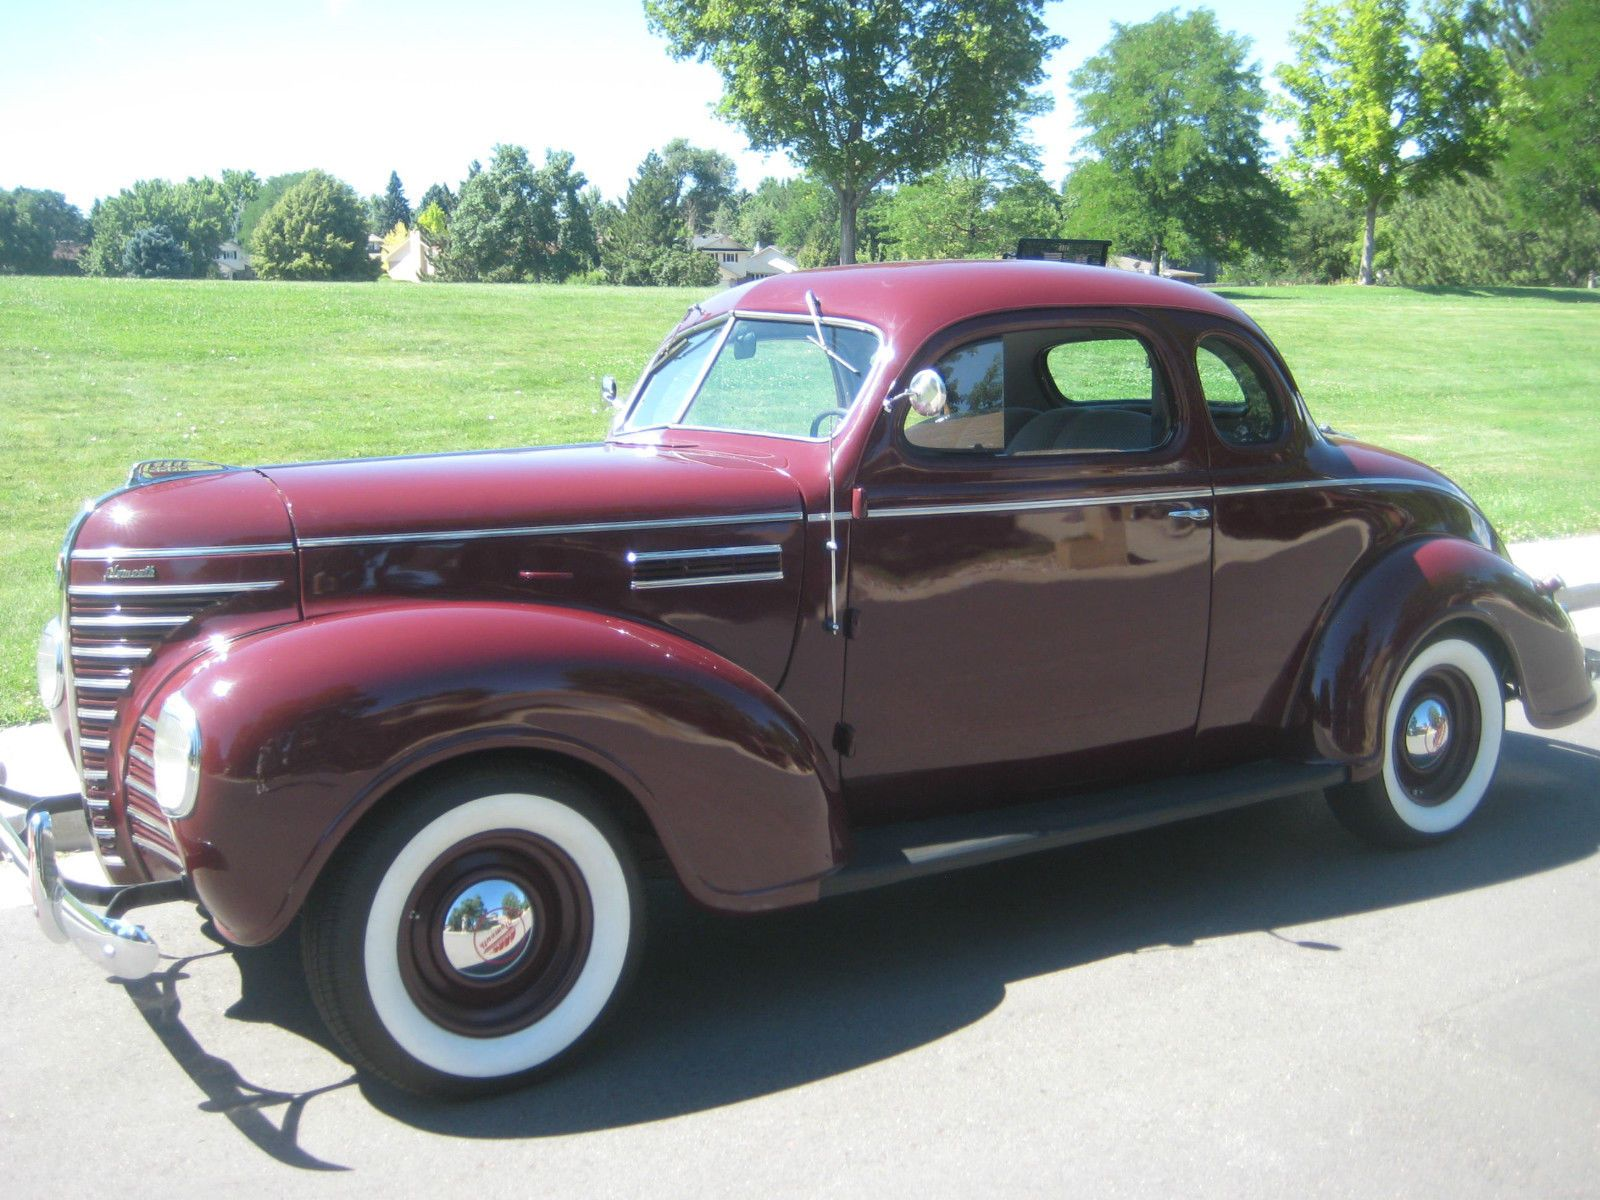 1939 Plymouth Business Coupe P8 2 door Coupe | Plymouth, Motor car ...